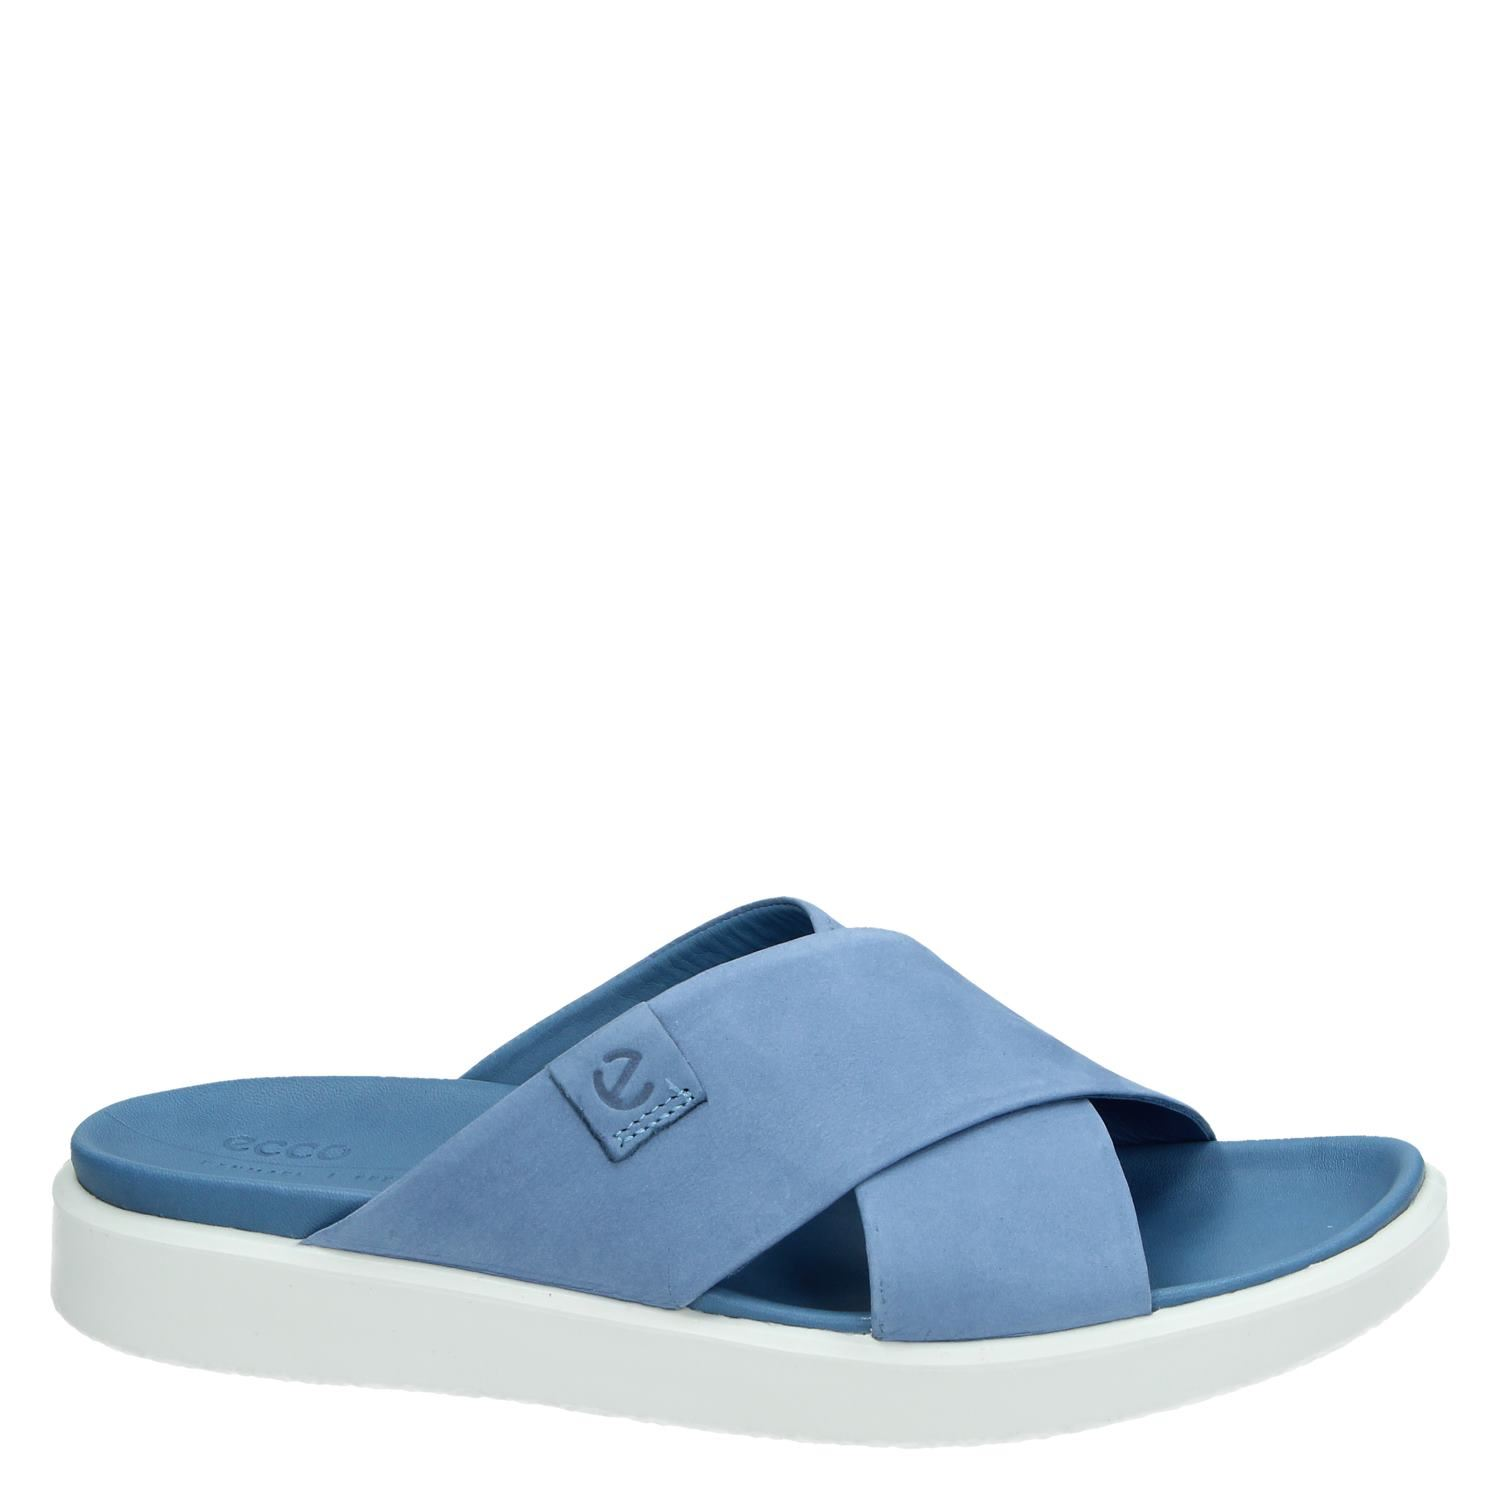 Ecco Flowt LX ladies slippers